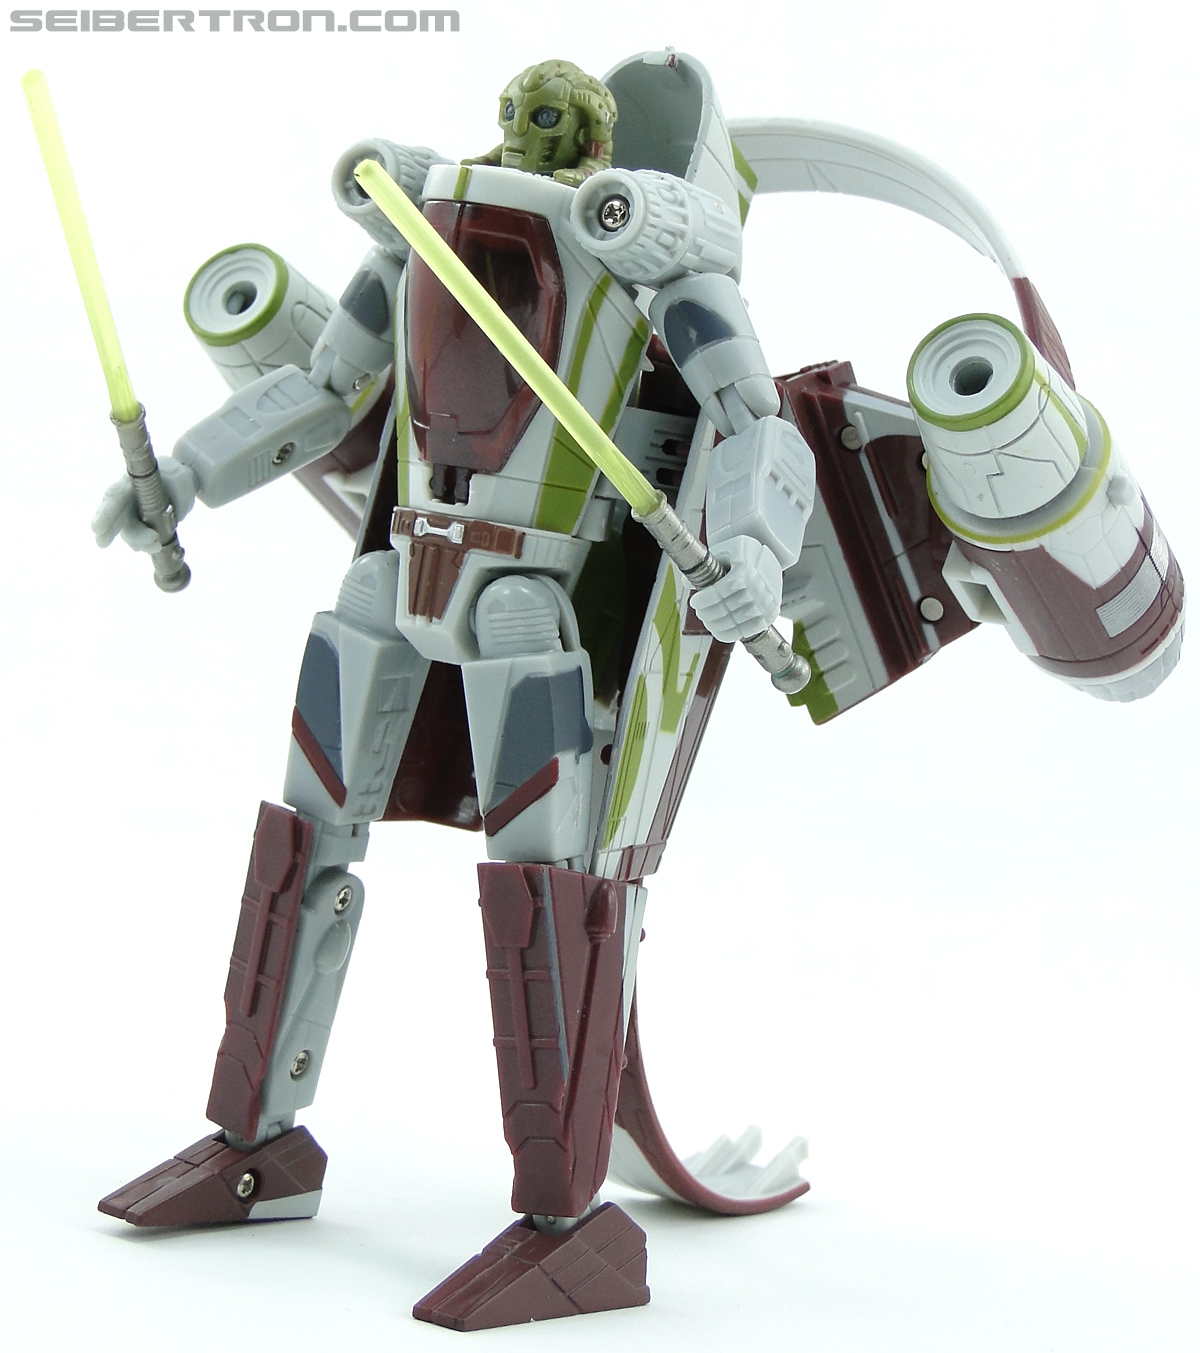 Star Wars Transformers Kit Fisto (Jedi Starfighter) (Image #65 of 104)